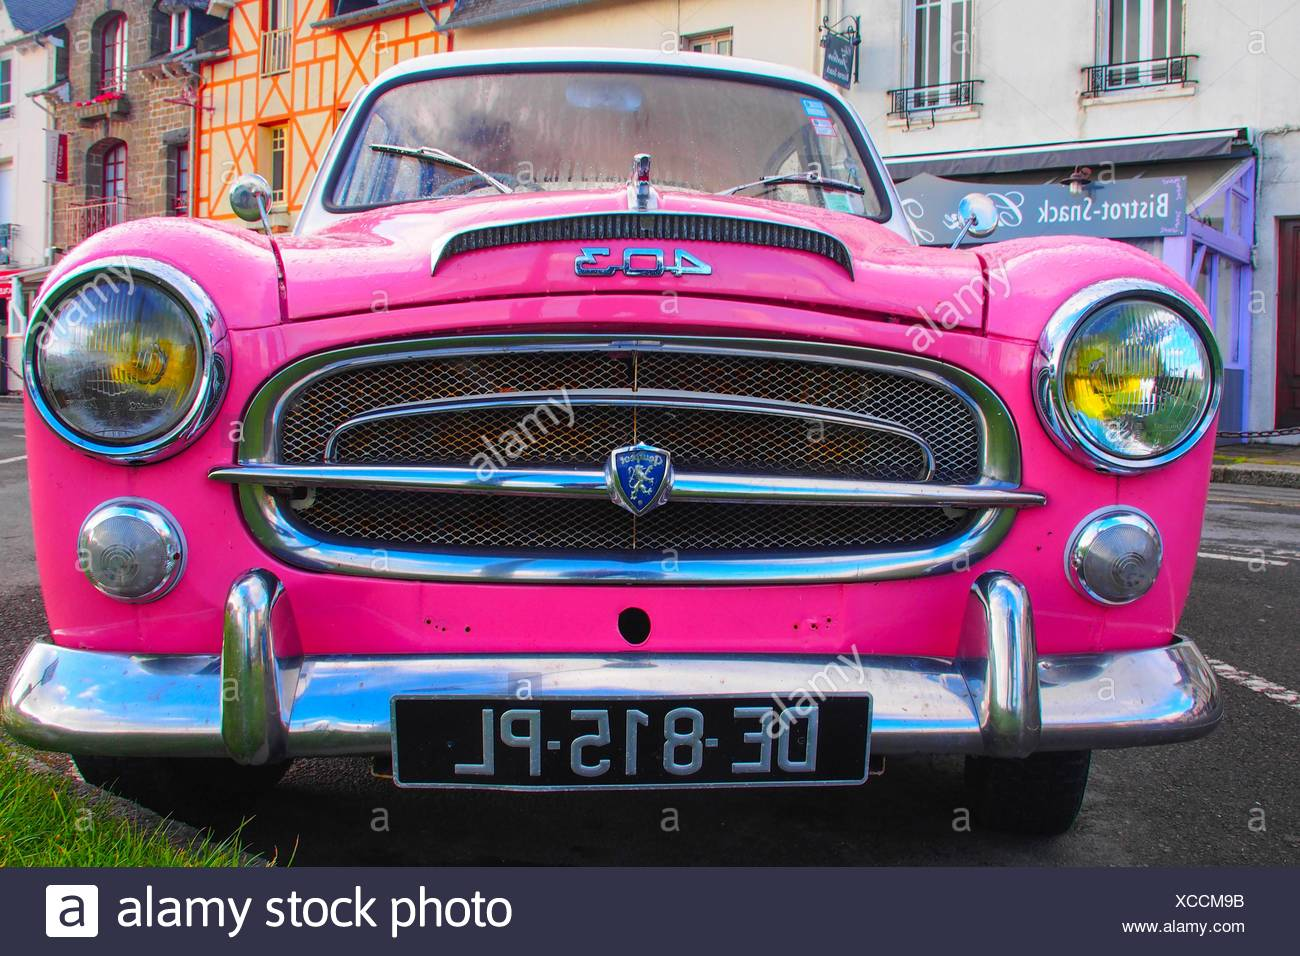 France-Brittany- vintage car- Peugeot aeound 1960- at Cancale. - Stock Image